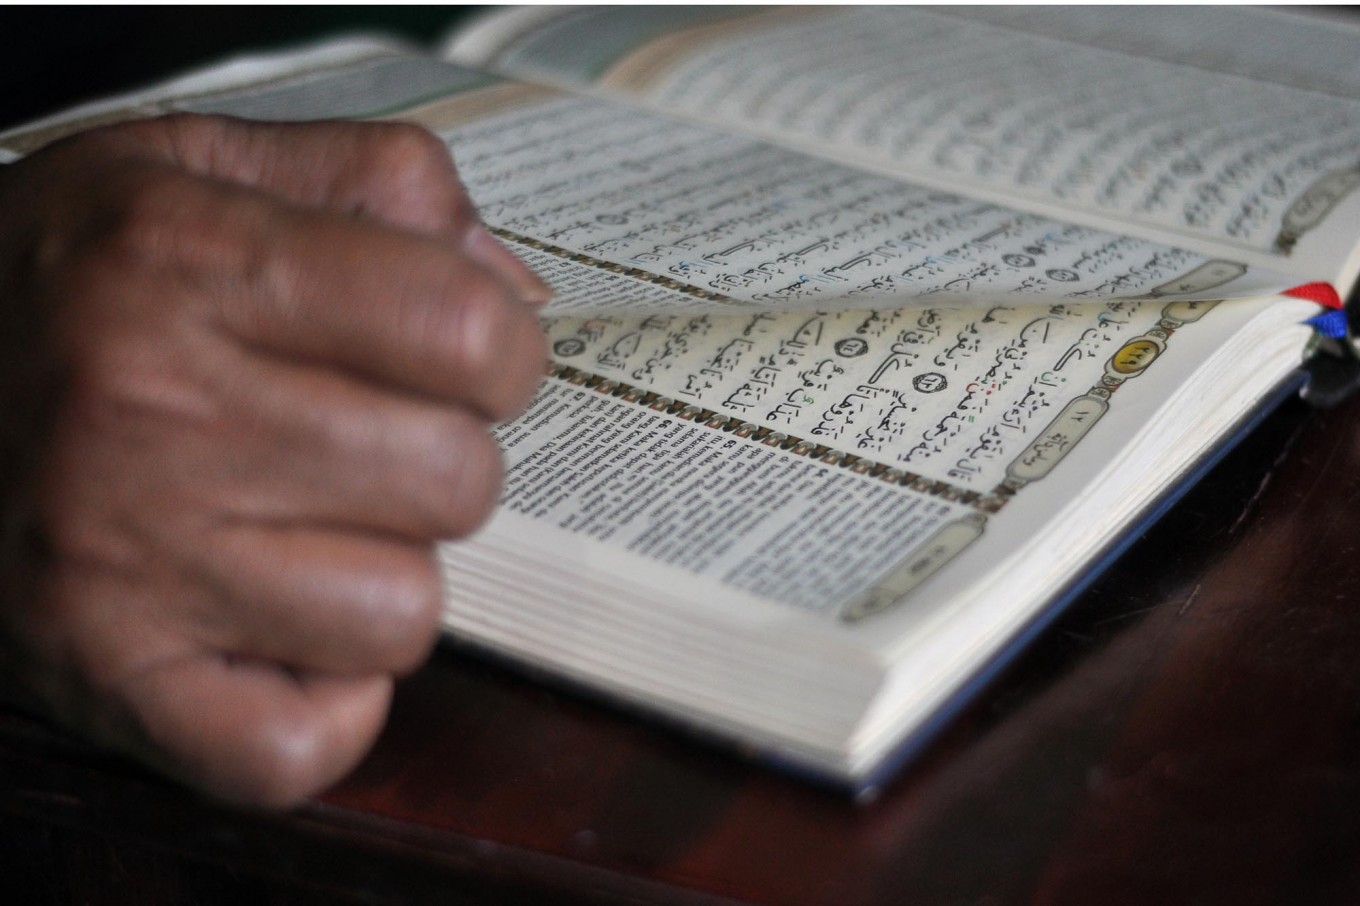 Bekasi students memorize Quran verses for places in schools